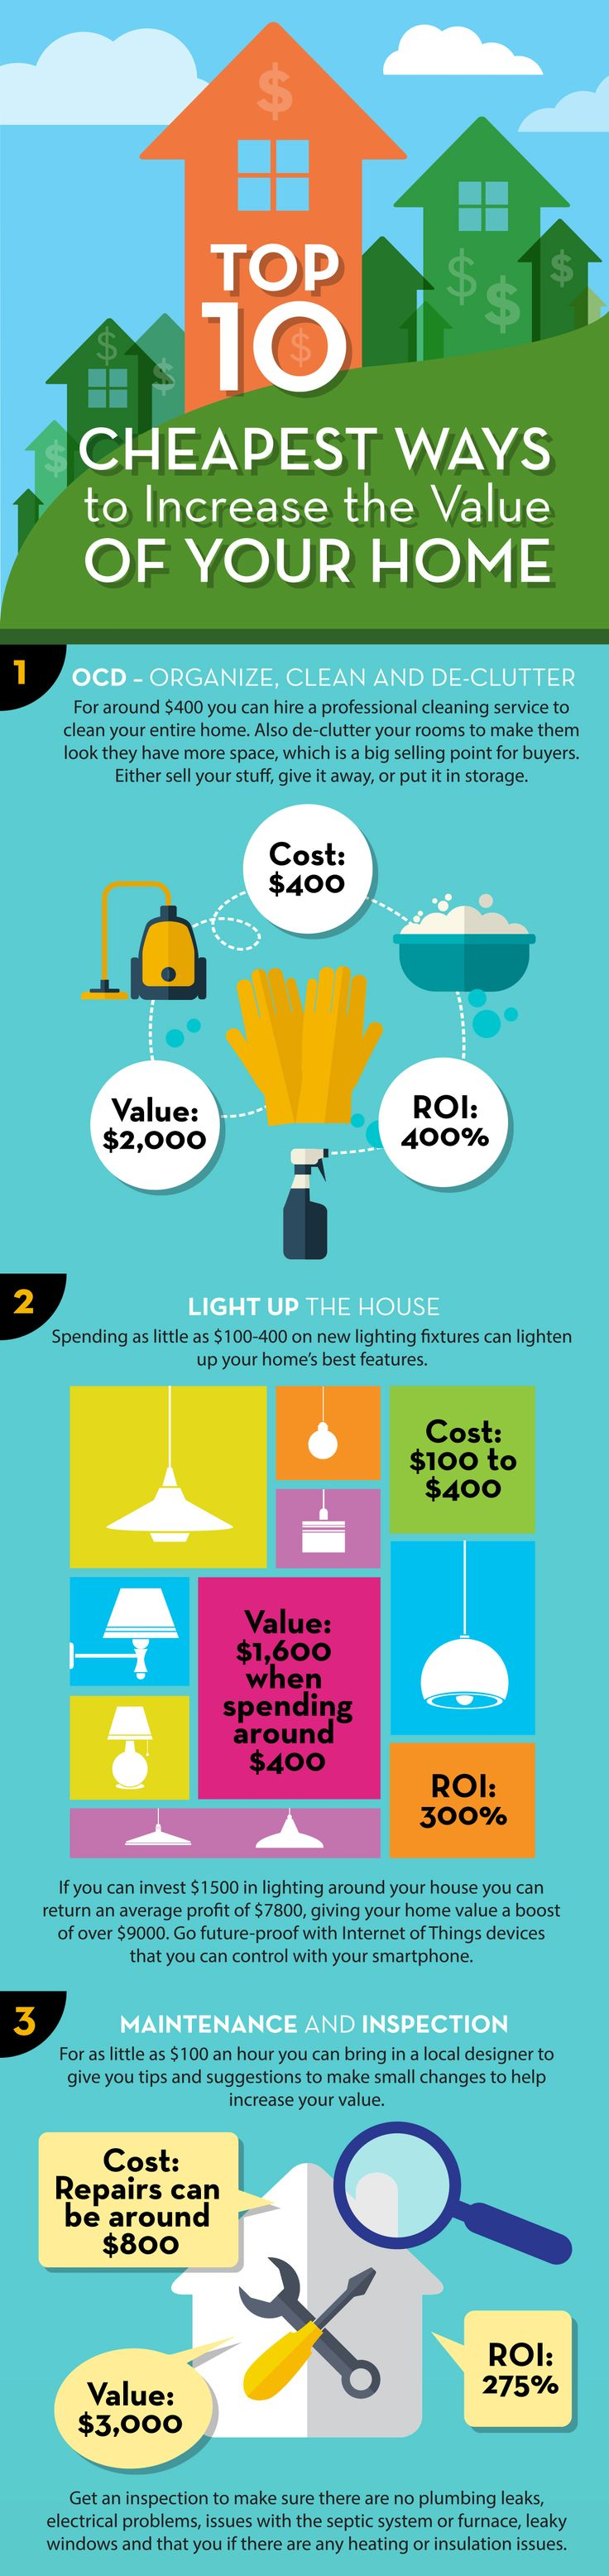 10 Cheap Ways to Increase a Home's Value http://styledstagedsold.blogs.realtor.org/2015/05/25/10-cheap-ways-to-increase-a-homes-value/?utm_content=buffer4e557&utm_medium=social&utm_source=pinterest.com&utm_campaign=buffer